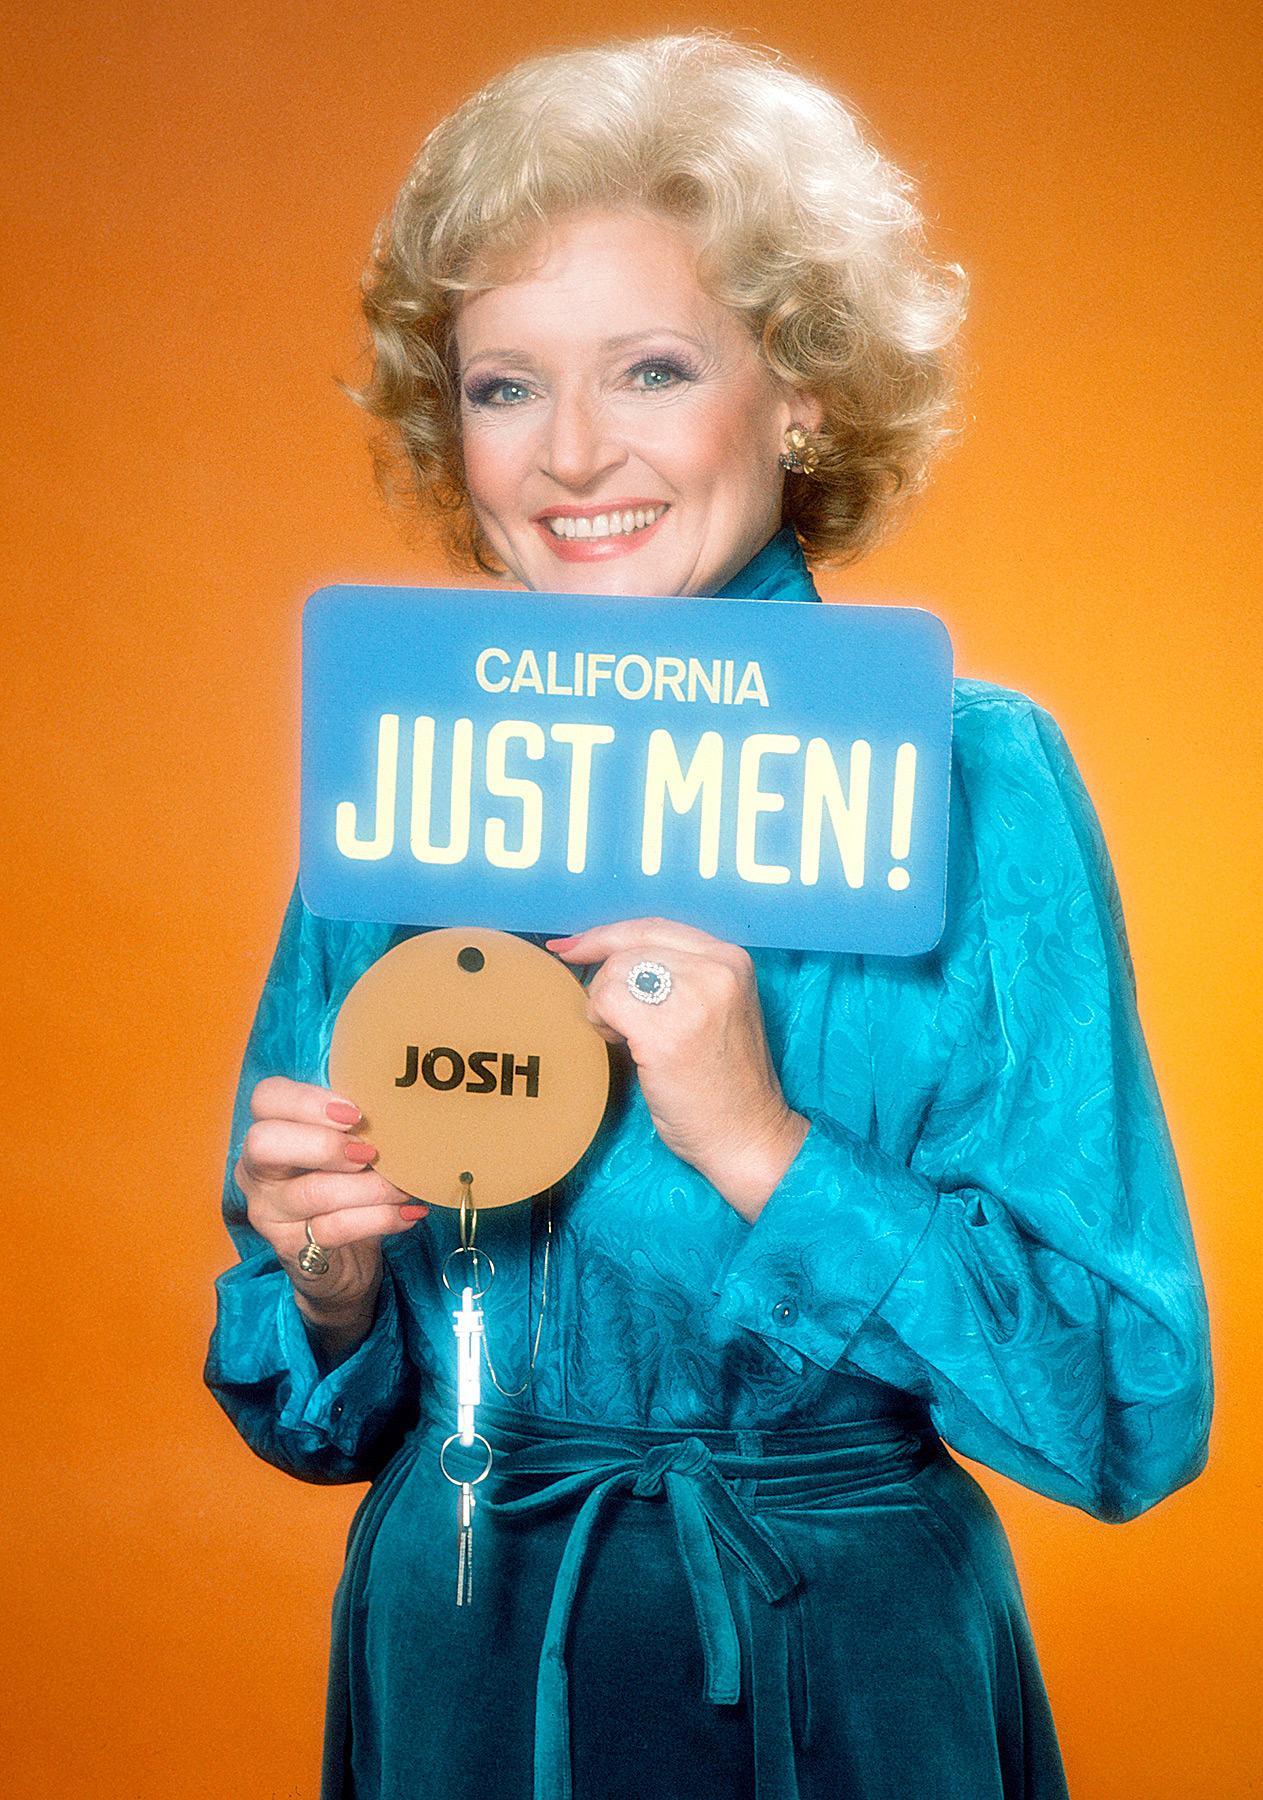 "White made history in 1983, becoming the first woman to win a Daytime Emmy Award in the category of Outstanding Game Show Host for NBC's Just Men! She went on to be named the ""First Lady of Game Shows."""